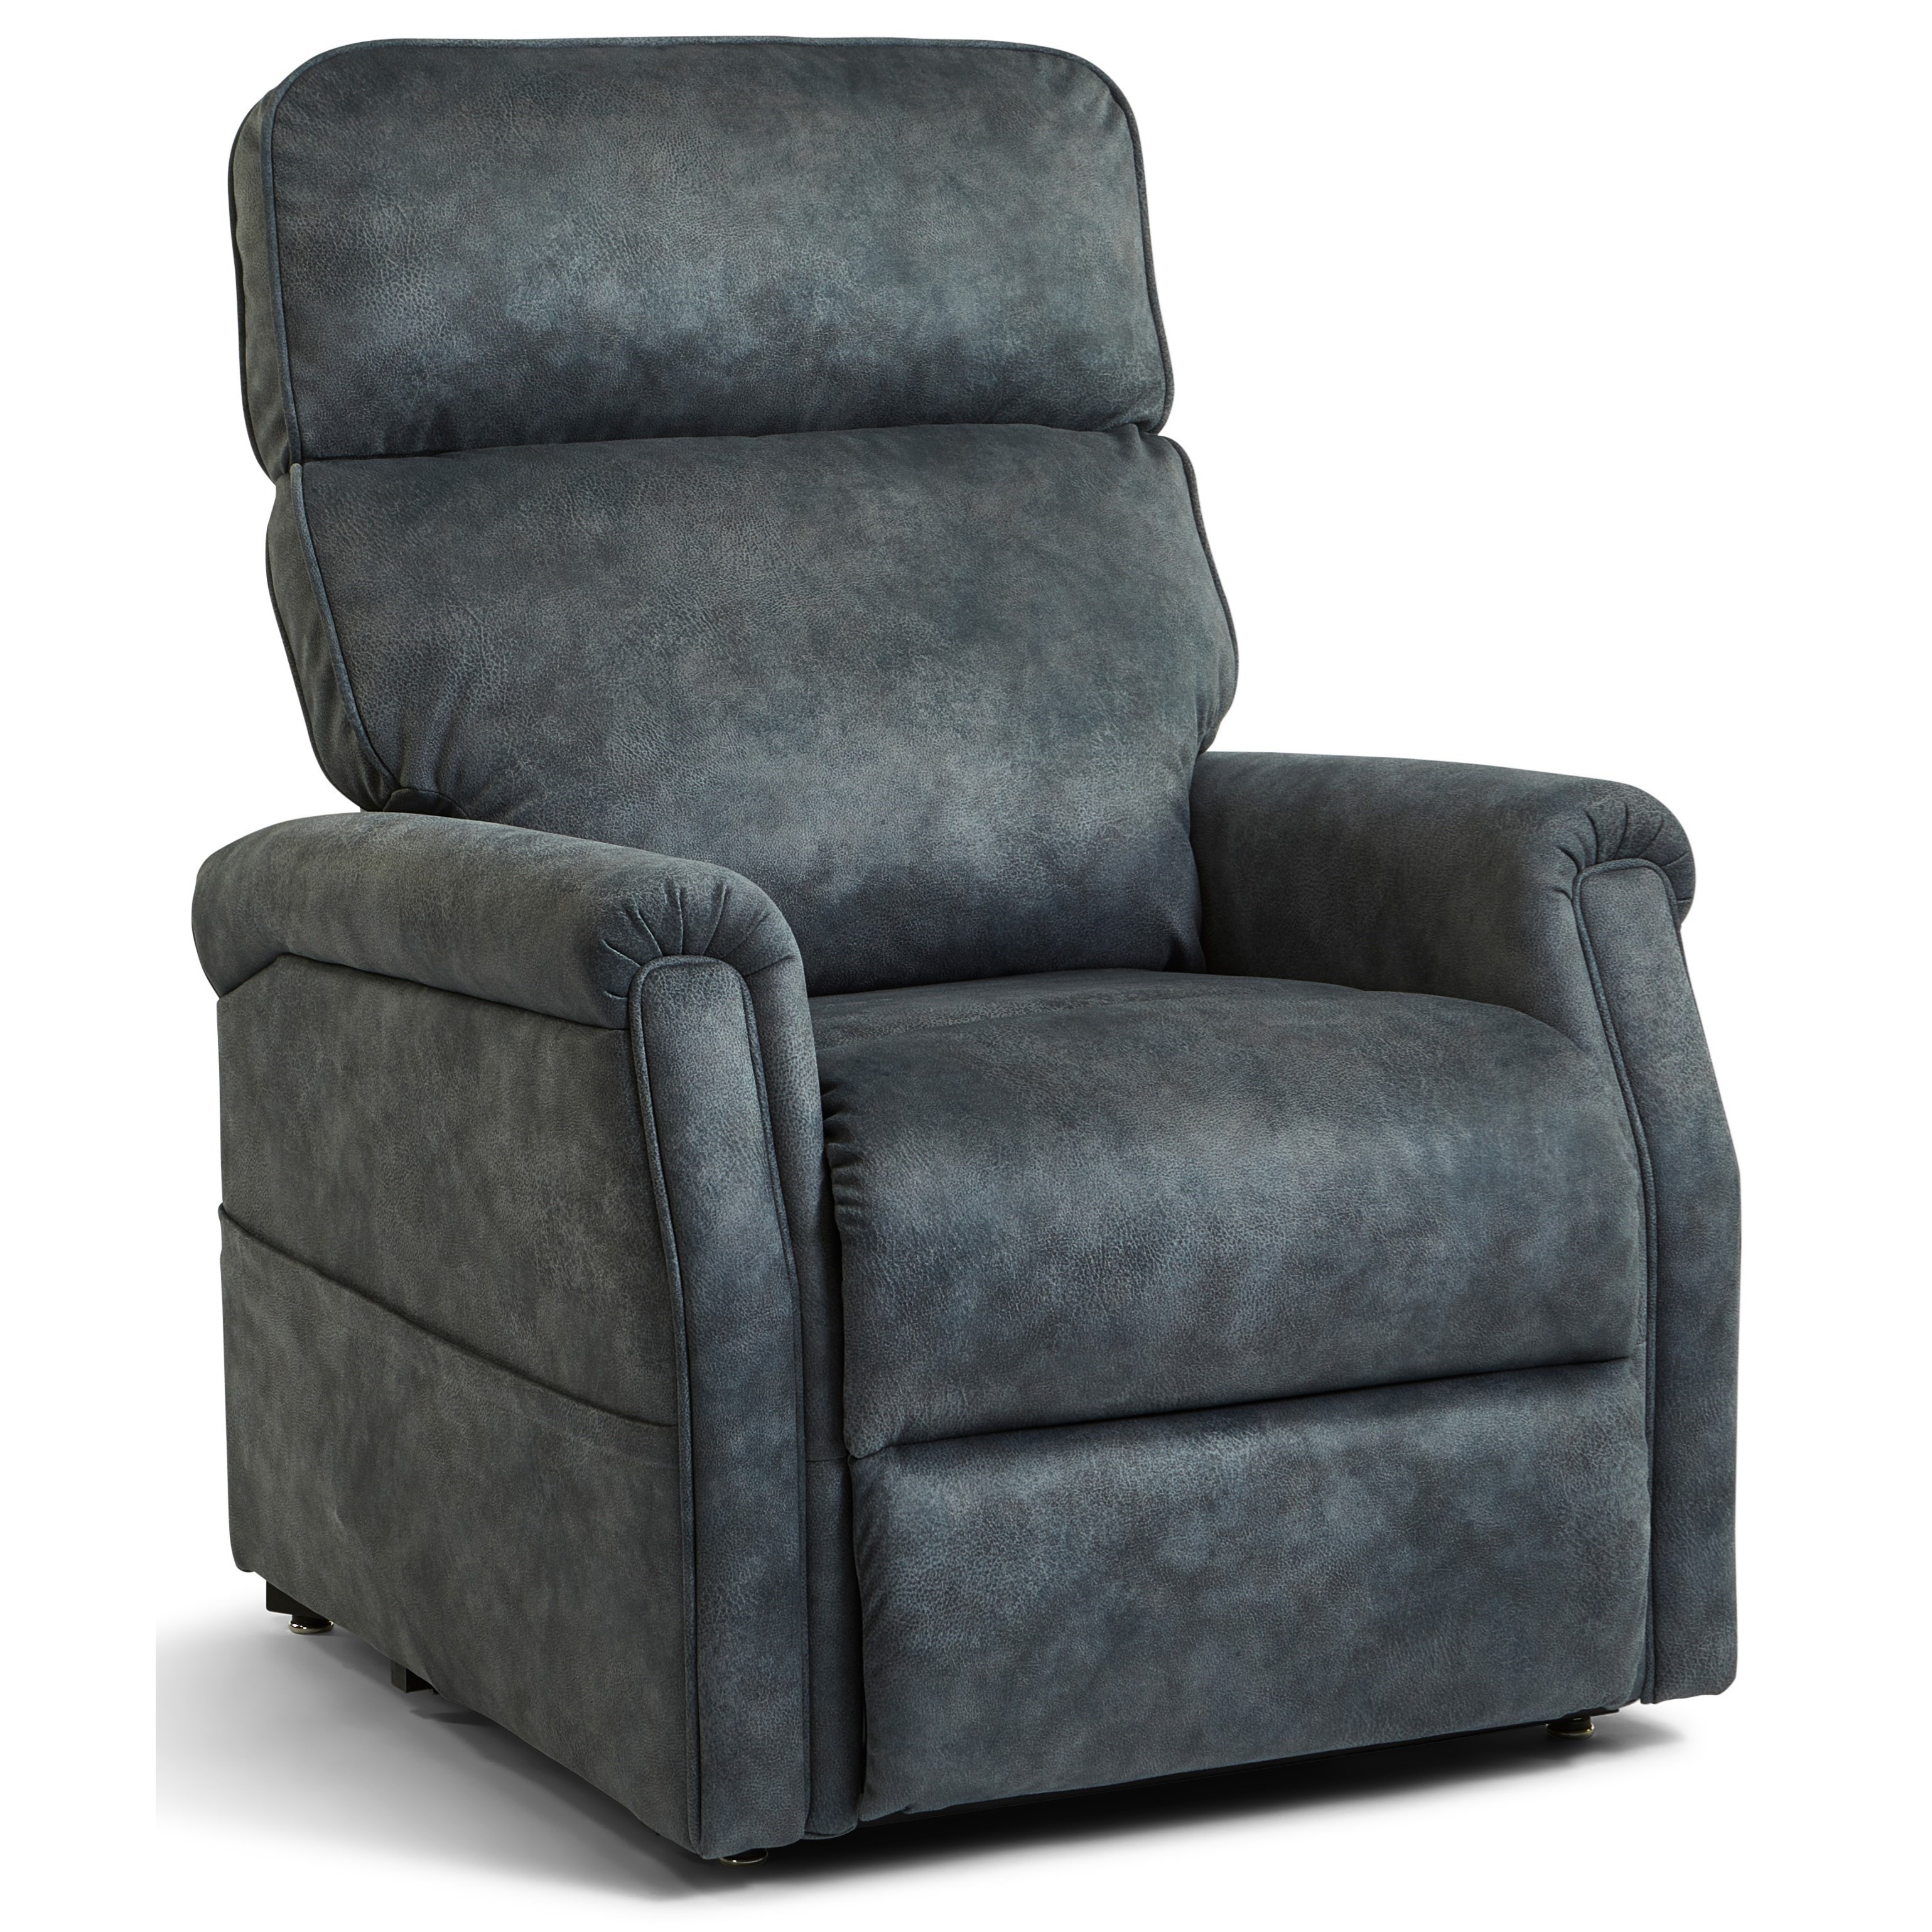 Latitudes - Dawn Power Lift Recliner by Flexsteel at Walker's Furniture